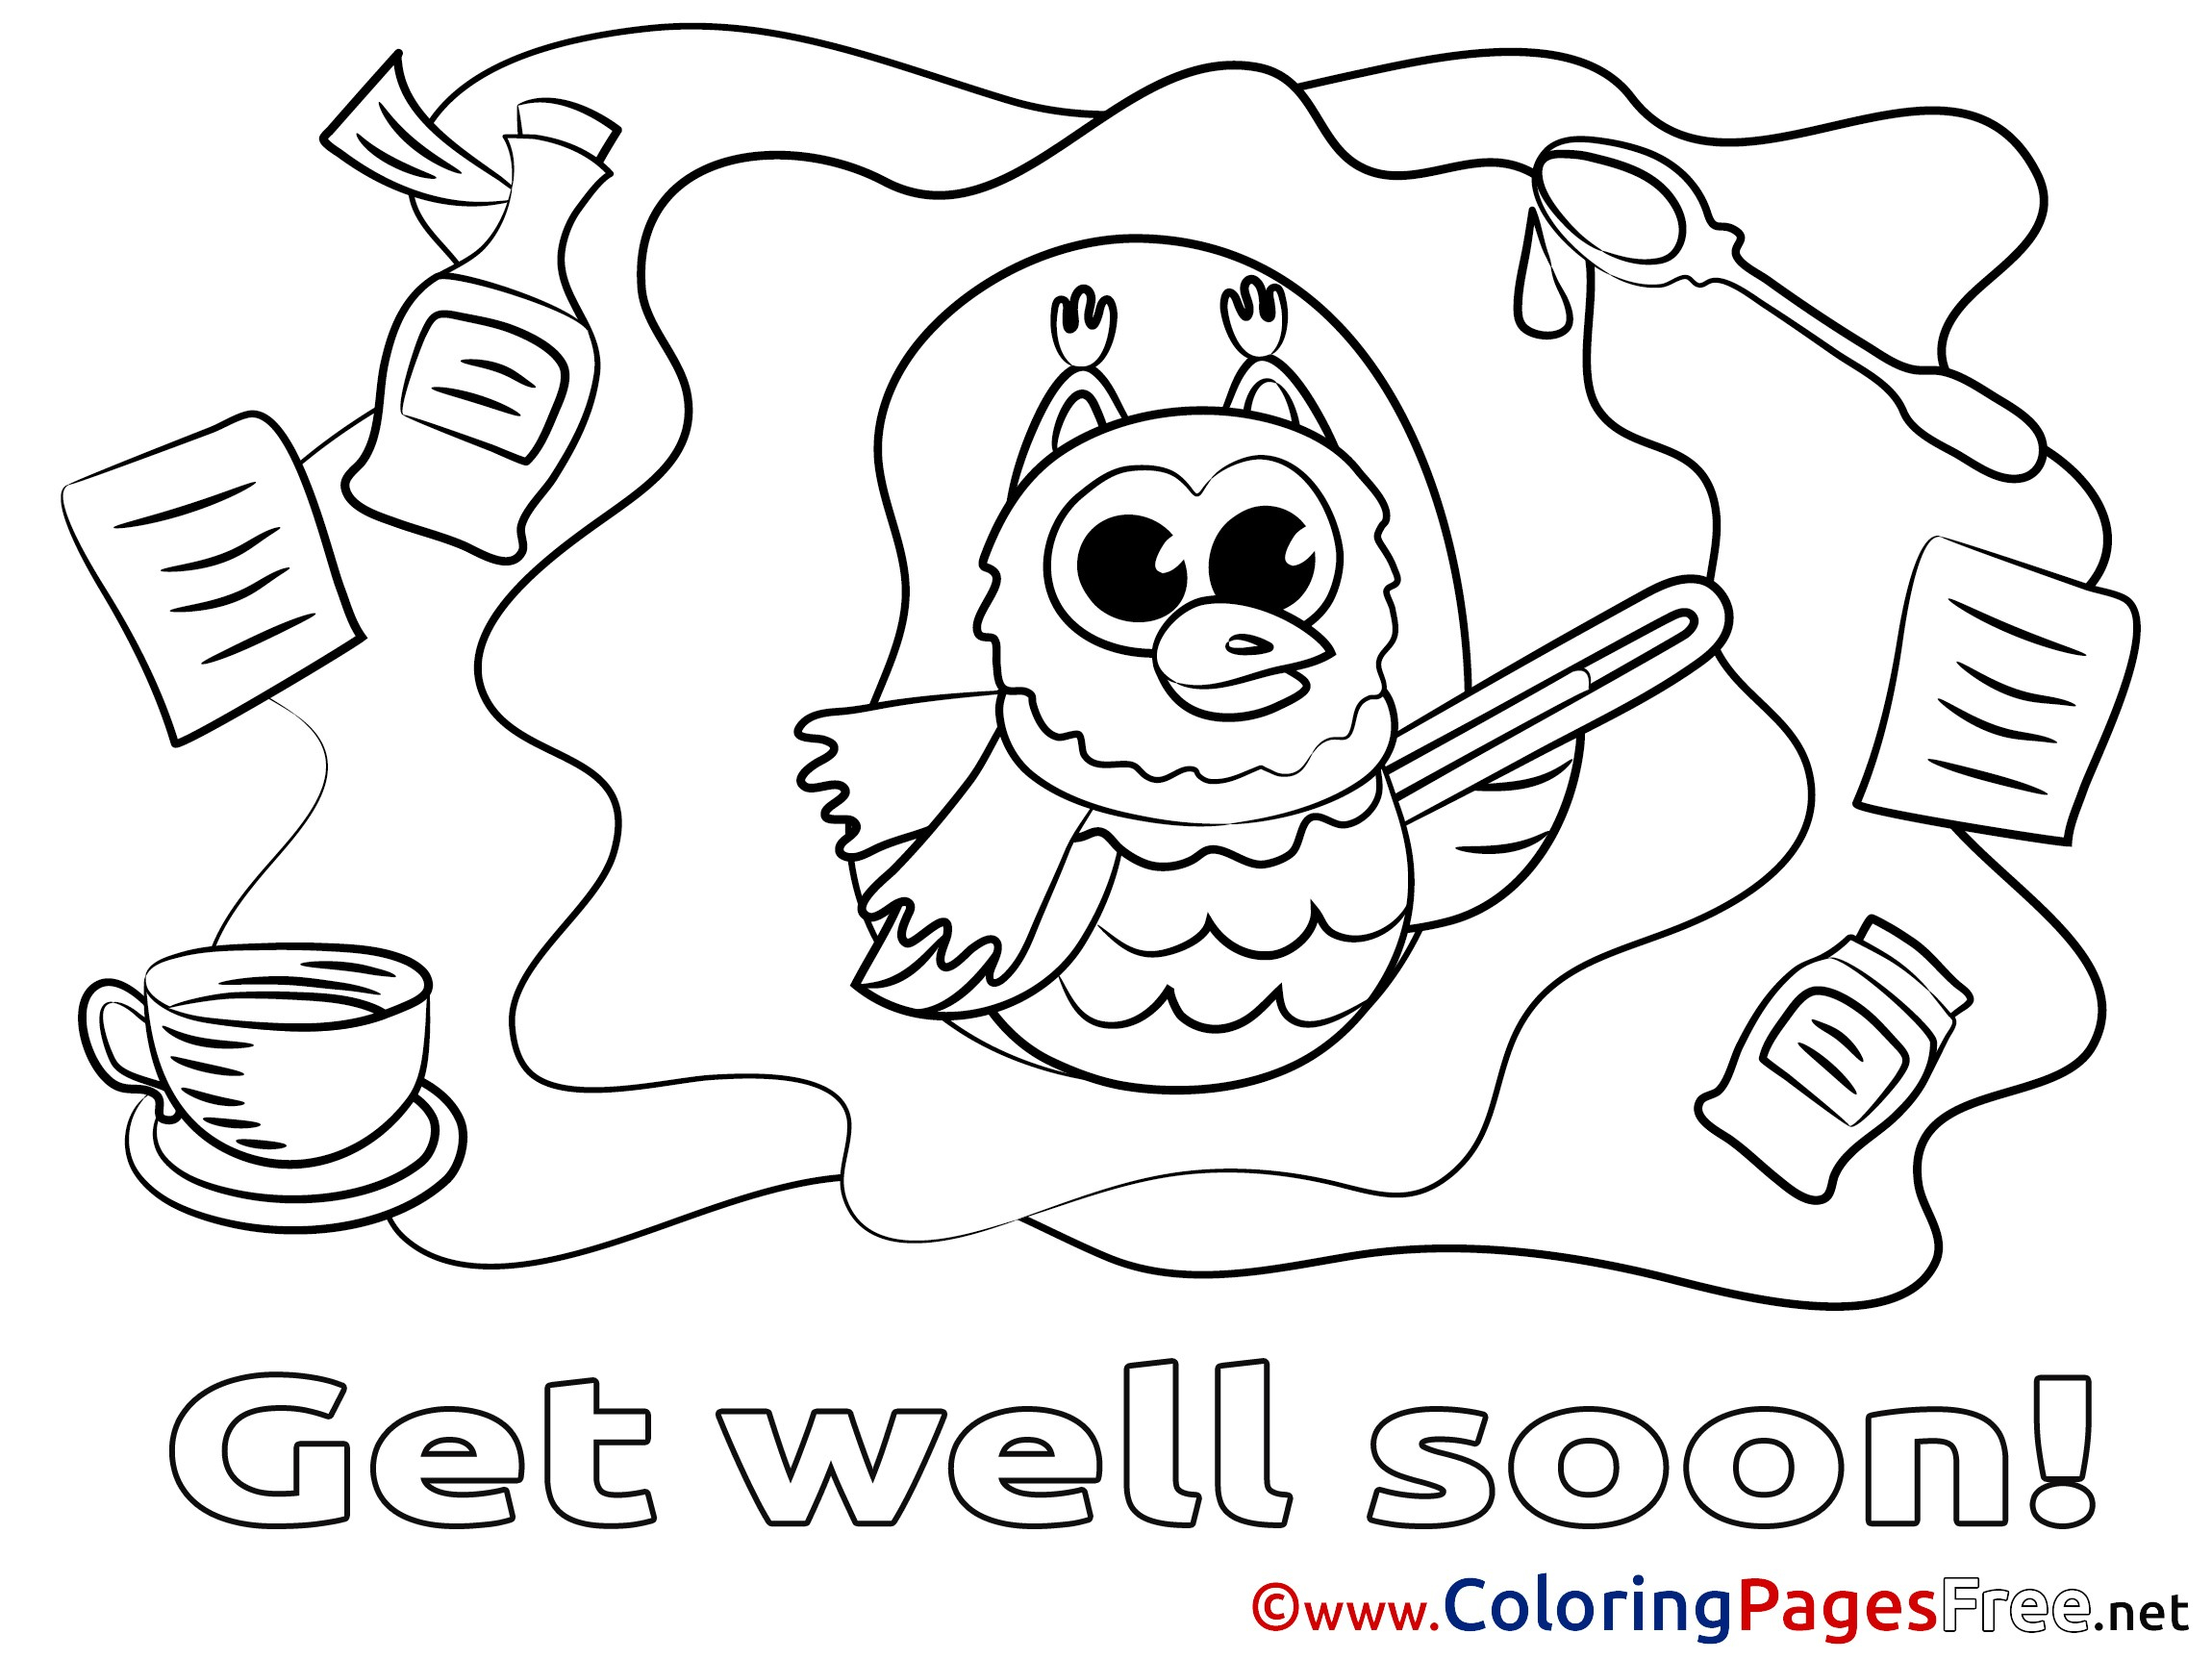 Get Well Coloring Pages Elegant Get Well Soon Coloring Pages 72 With Additional Print Of